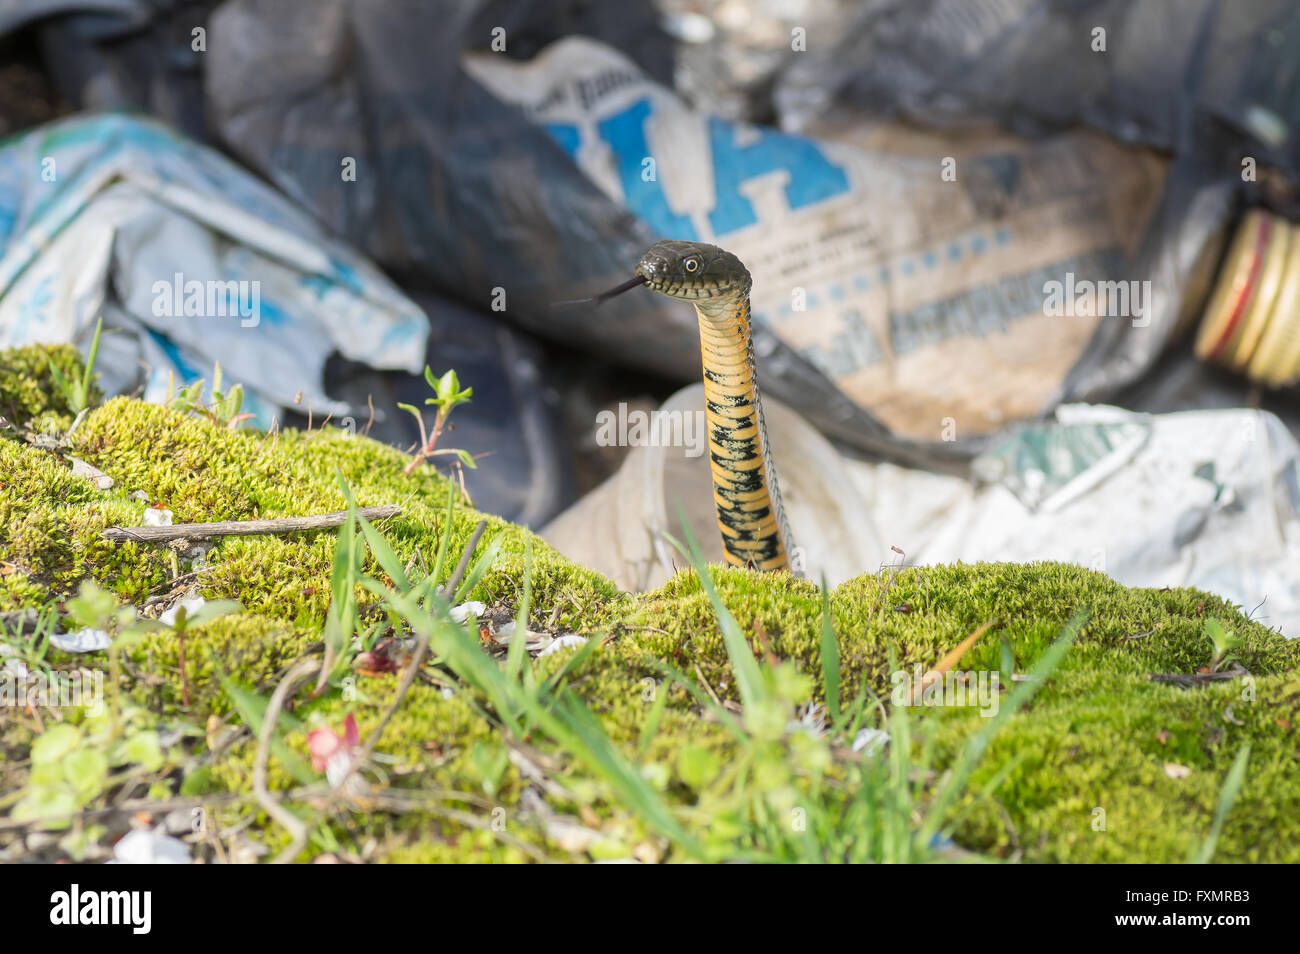 Curious Dice snake (Natrix tessellata) looking out from refuse pit at early spring season - Stock Image